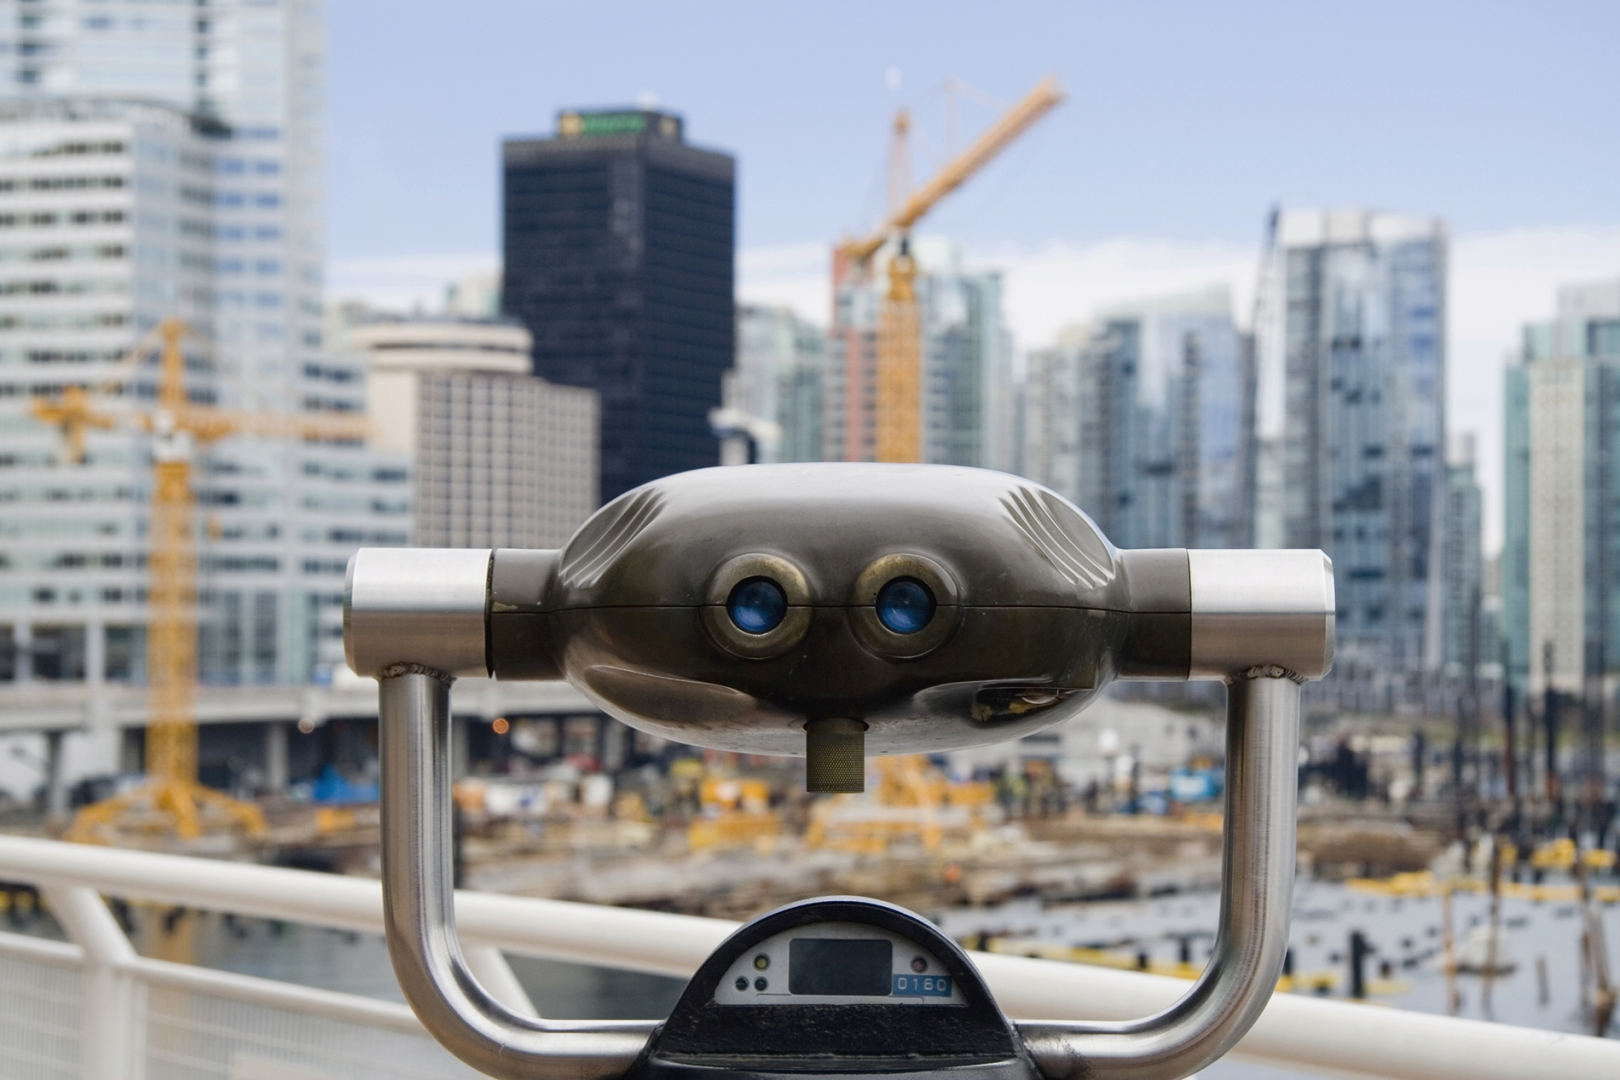 binoculars overlooking city development